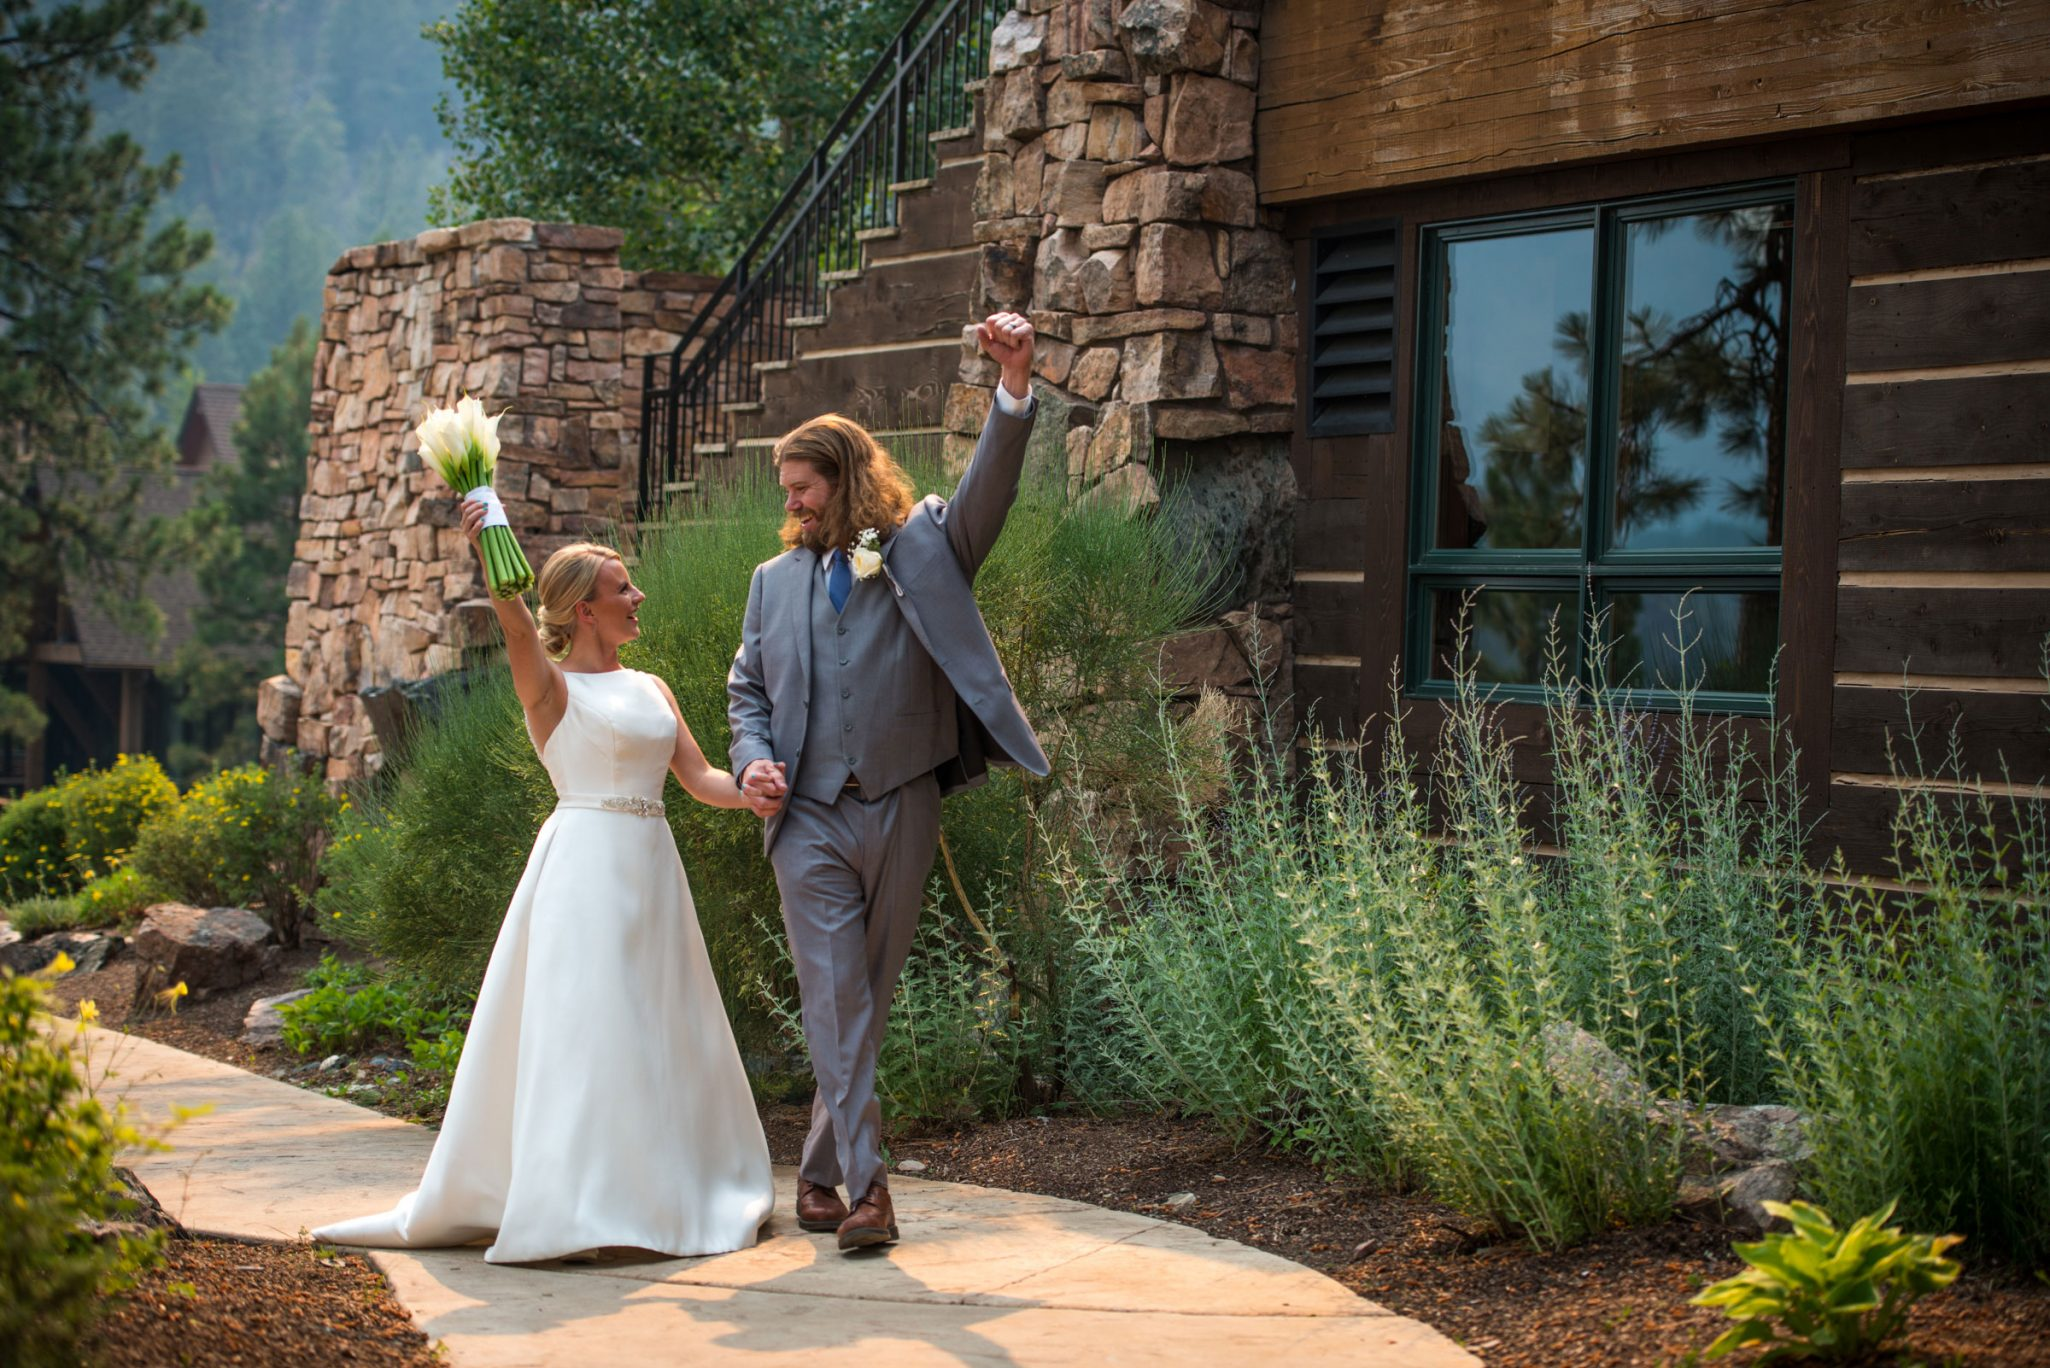 Bride & Groom at the Glacier Club, Durango Colorado